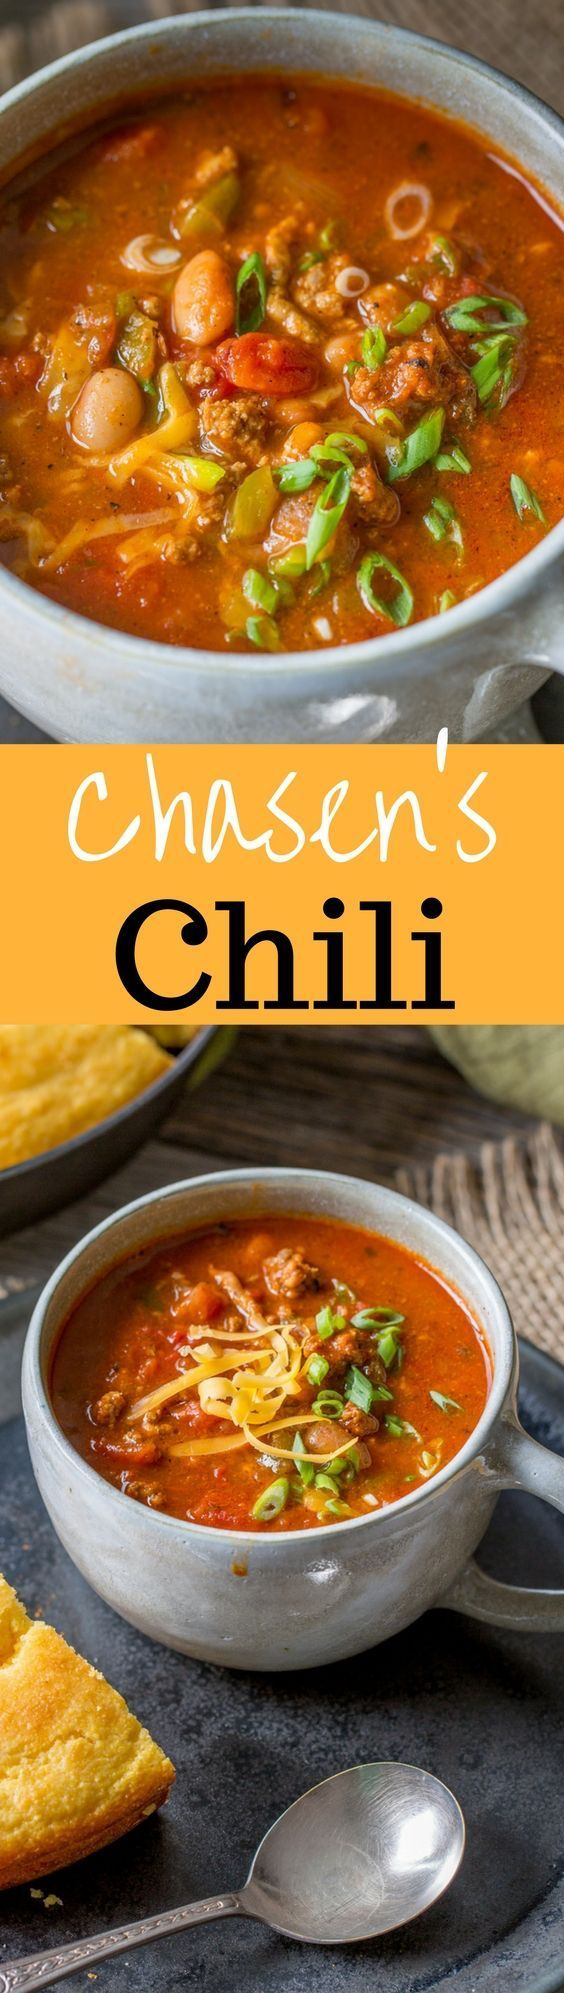 Chasen's Chili - adapted from the famous Chasen's Hollywood restaurant recipe…